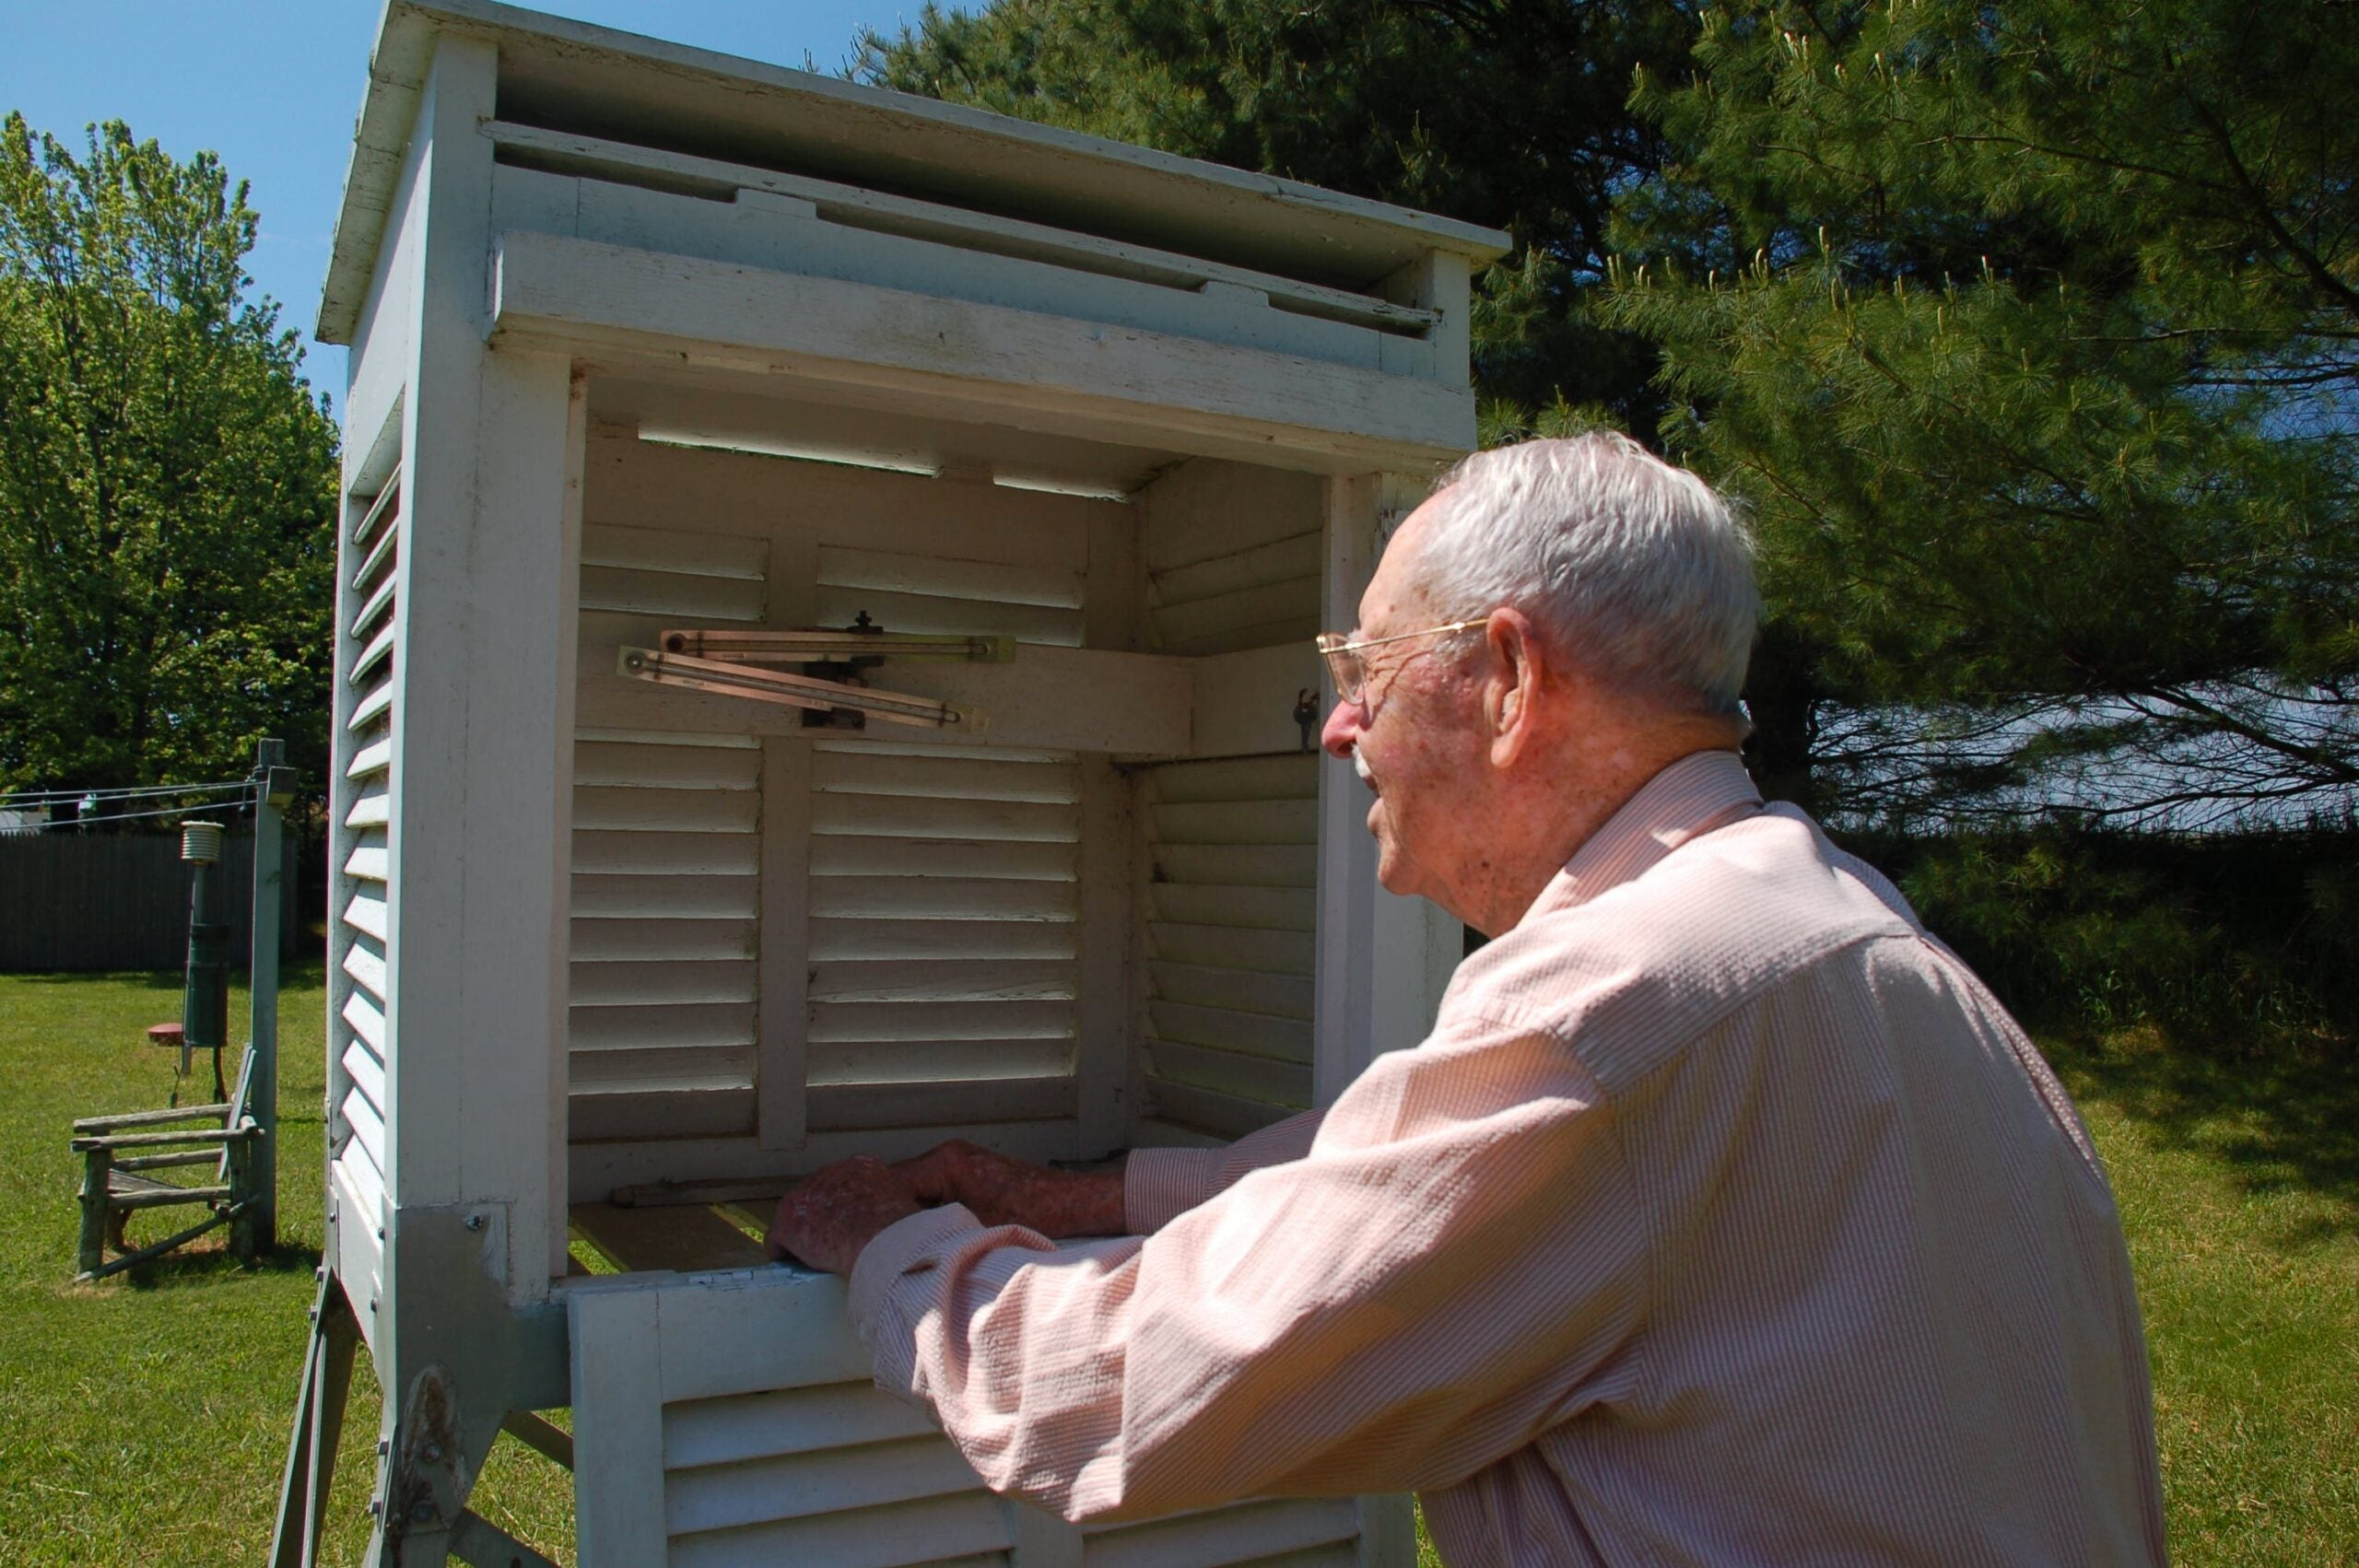 101-Year-Old Citizen Scientist Has Called In Weather Observations Every Day For 84 Years